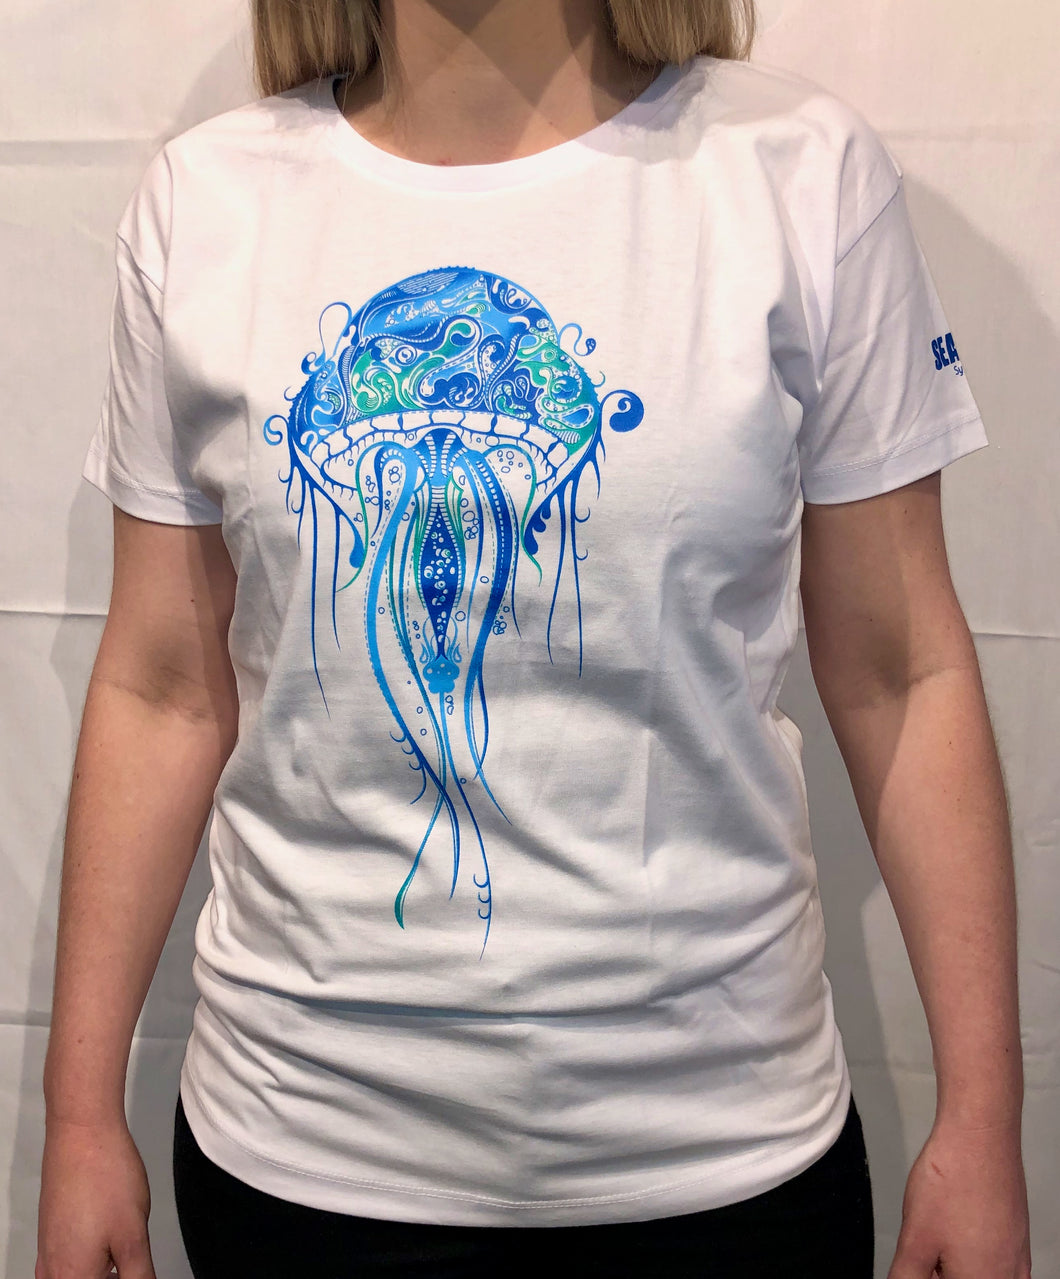 SEA LIFE Sydney Jellyfish Ladies t-shirt White